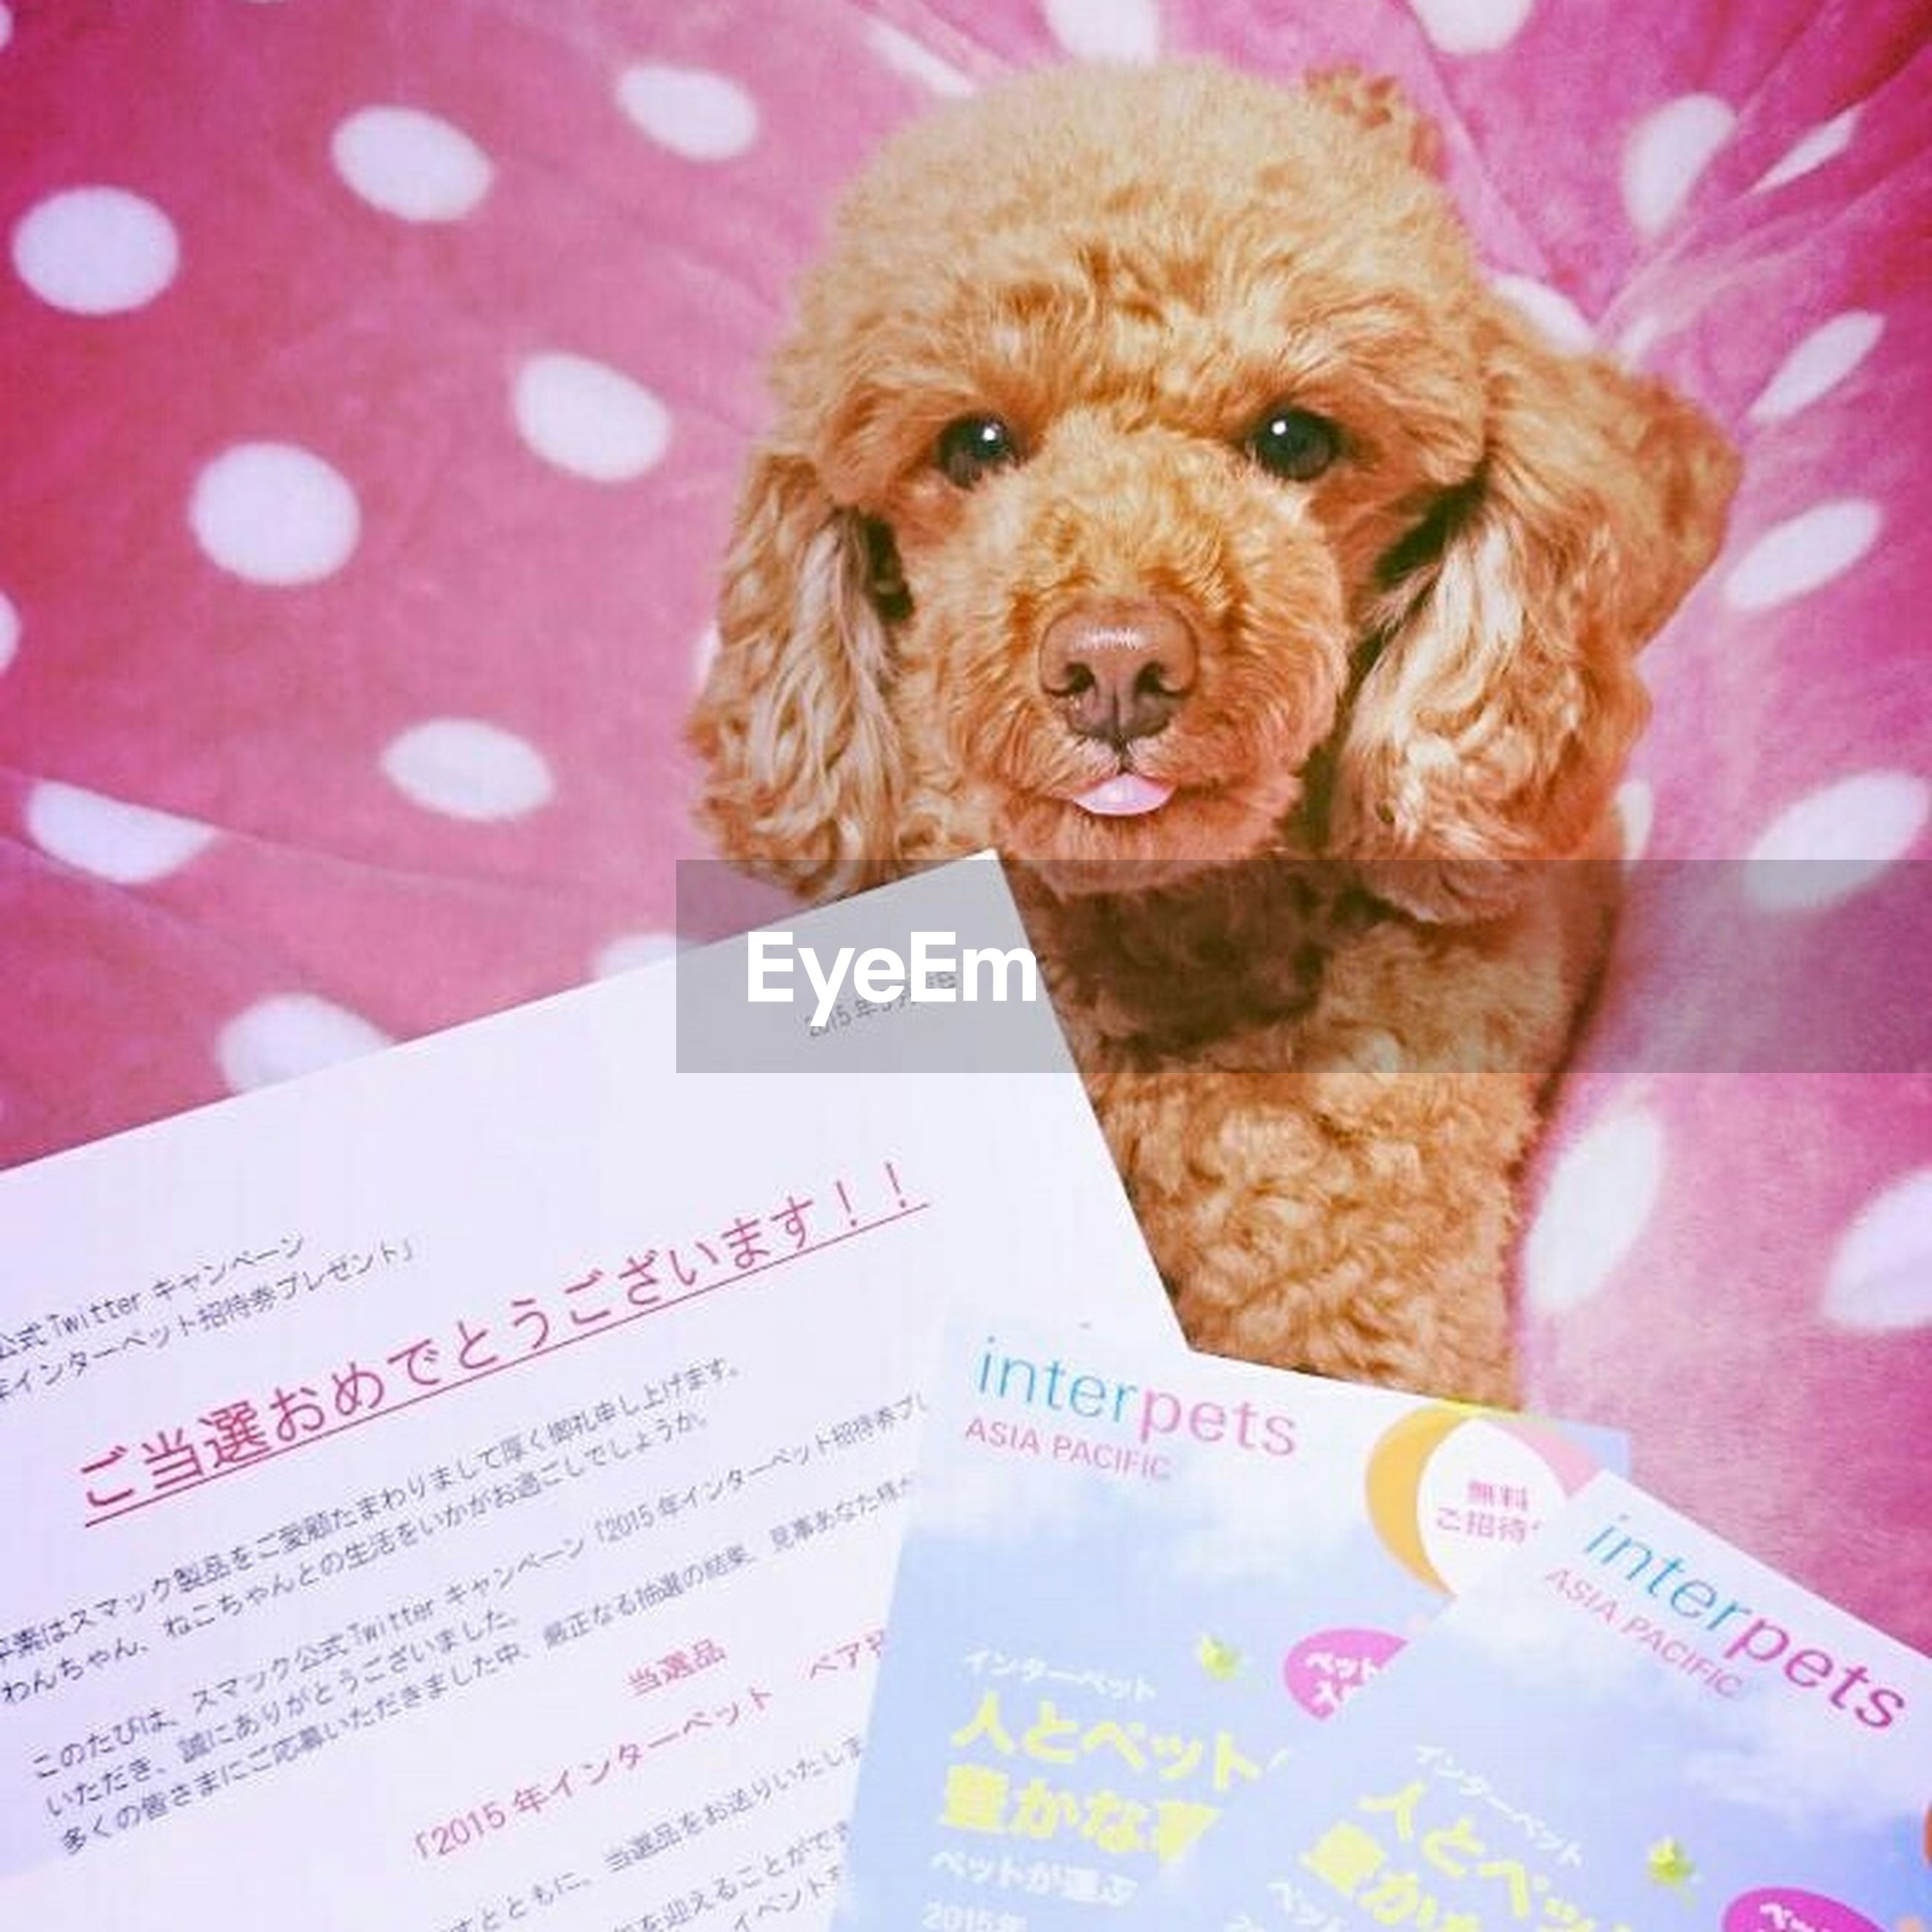 indoors, text, close-up, western script, high angle view, no people, pets, paper, dog, brown, still life, freshness, animal themes, pink color, domestic animals, book, communication, selective focus, stuffed toy, relaxation